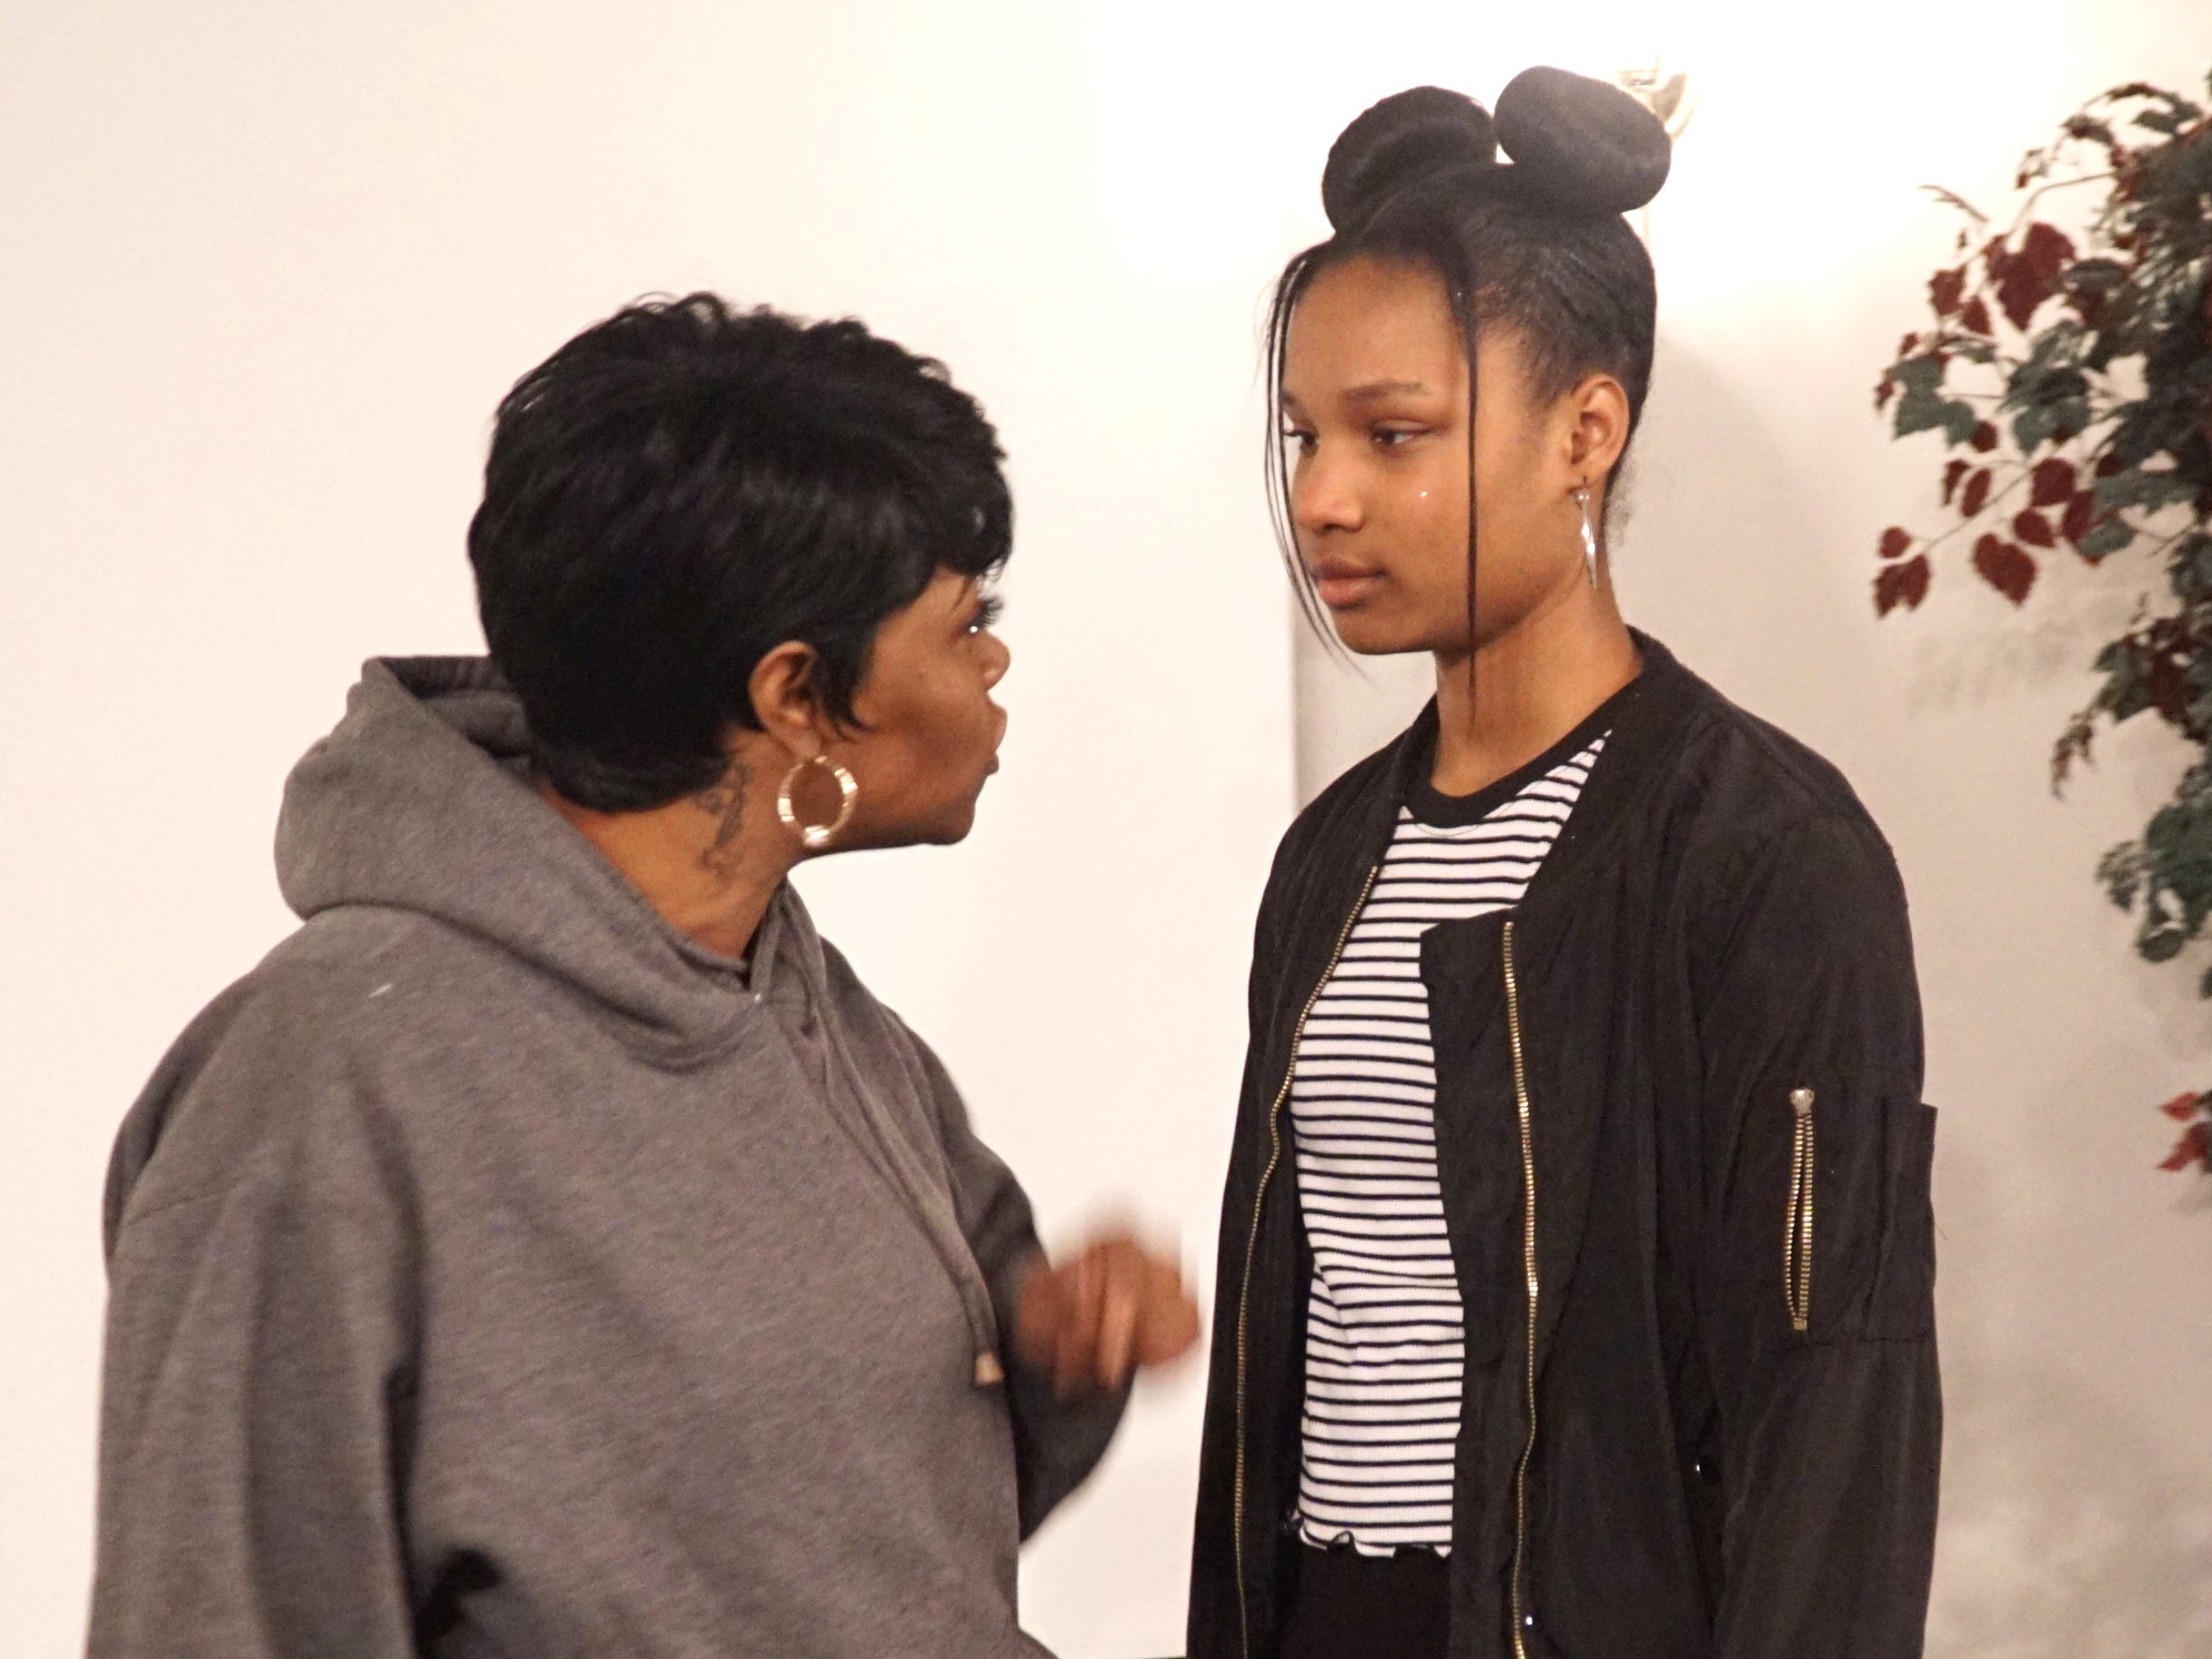 Andreana Beard, right, and Lavonia Ratliff rehearse #Listen on March 11.